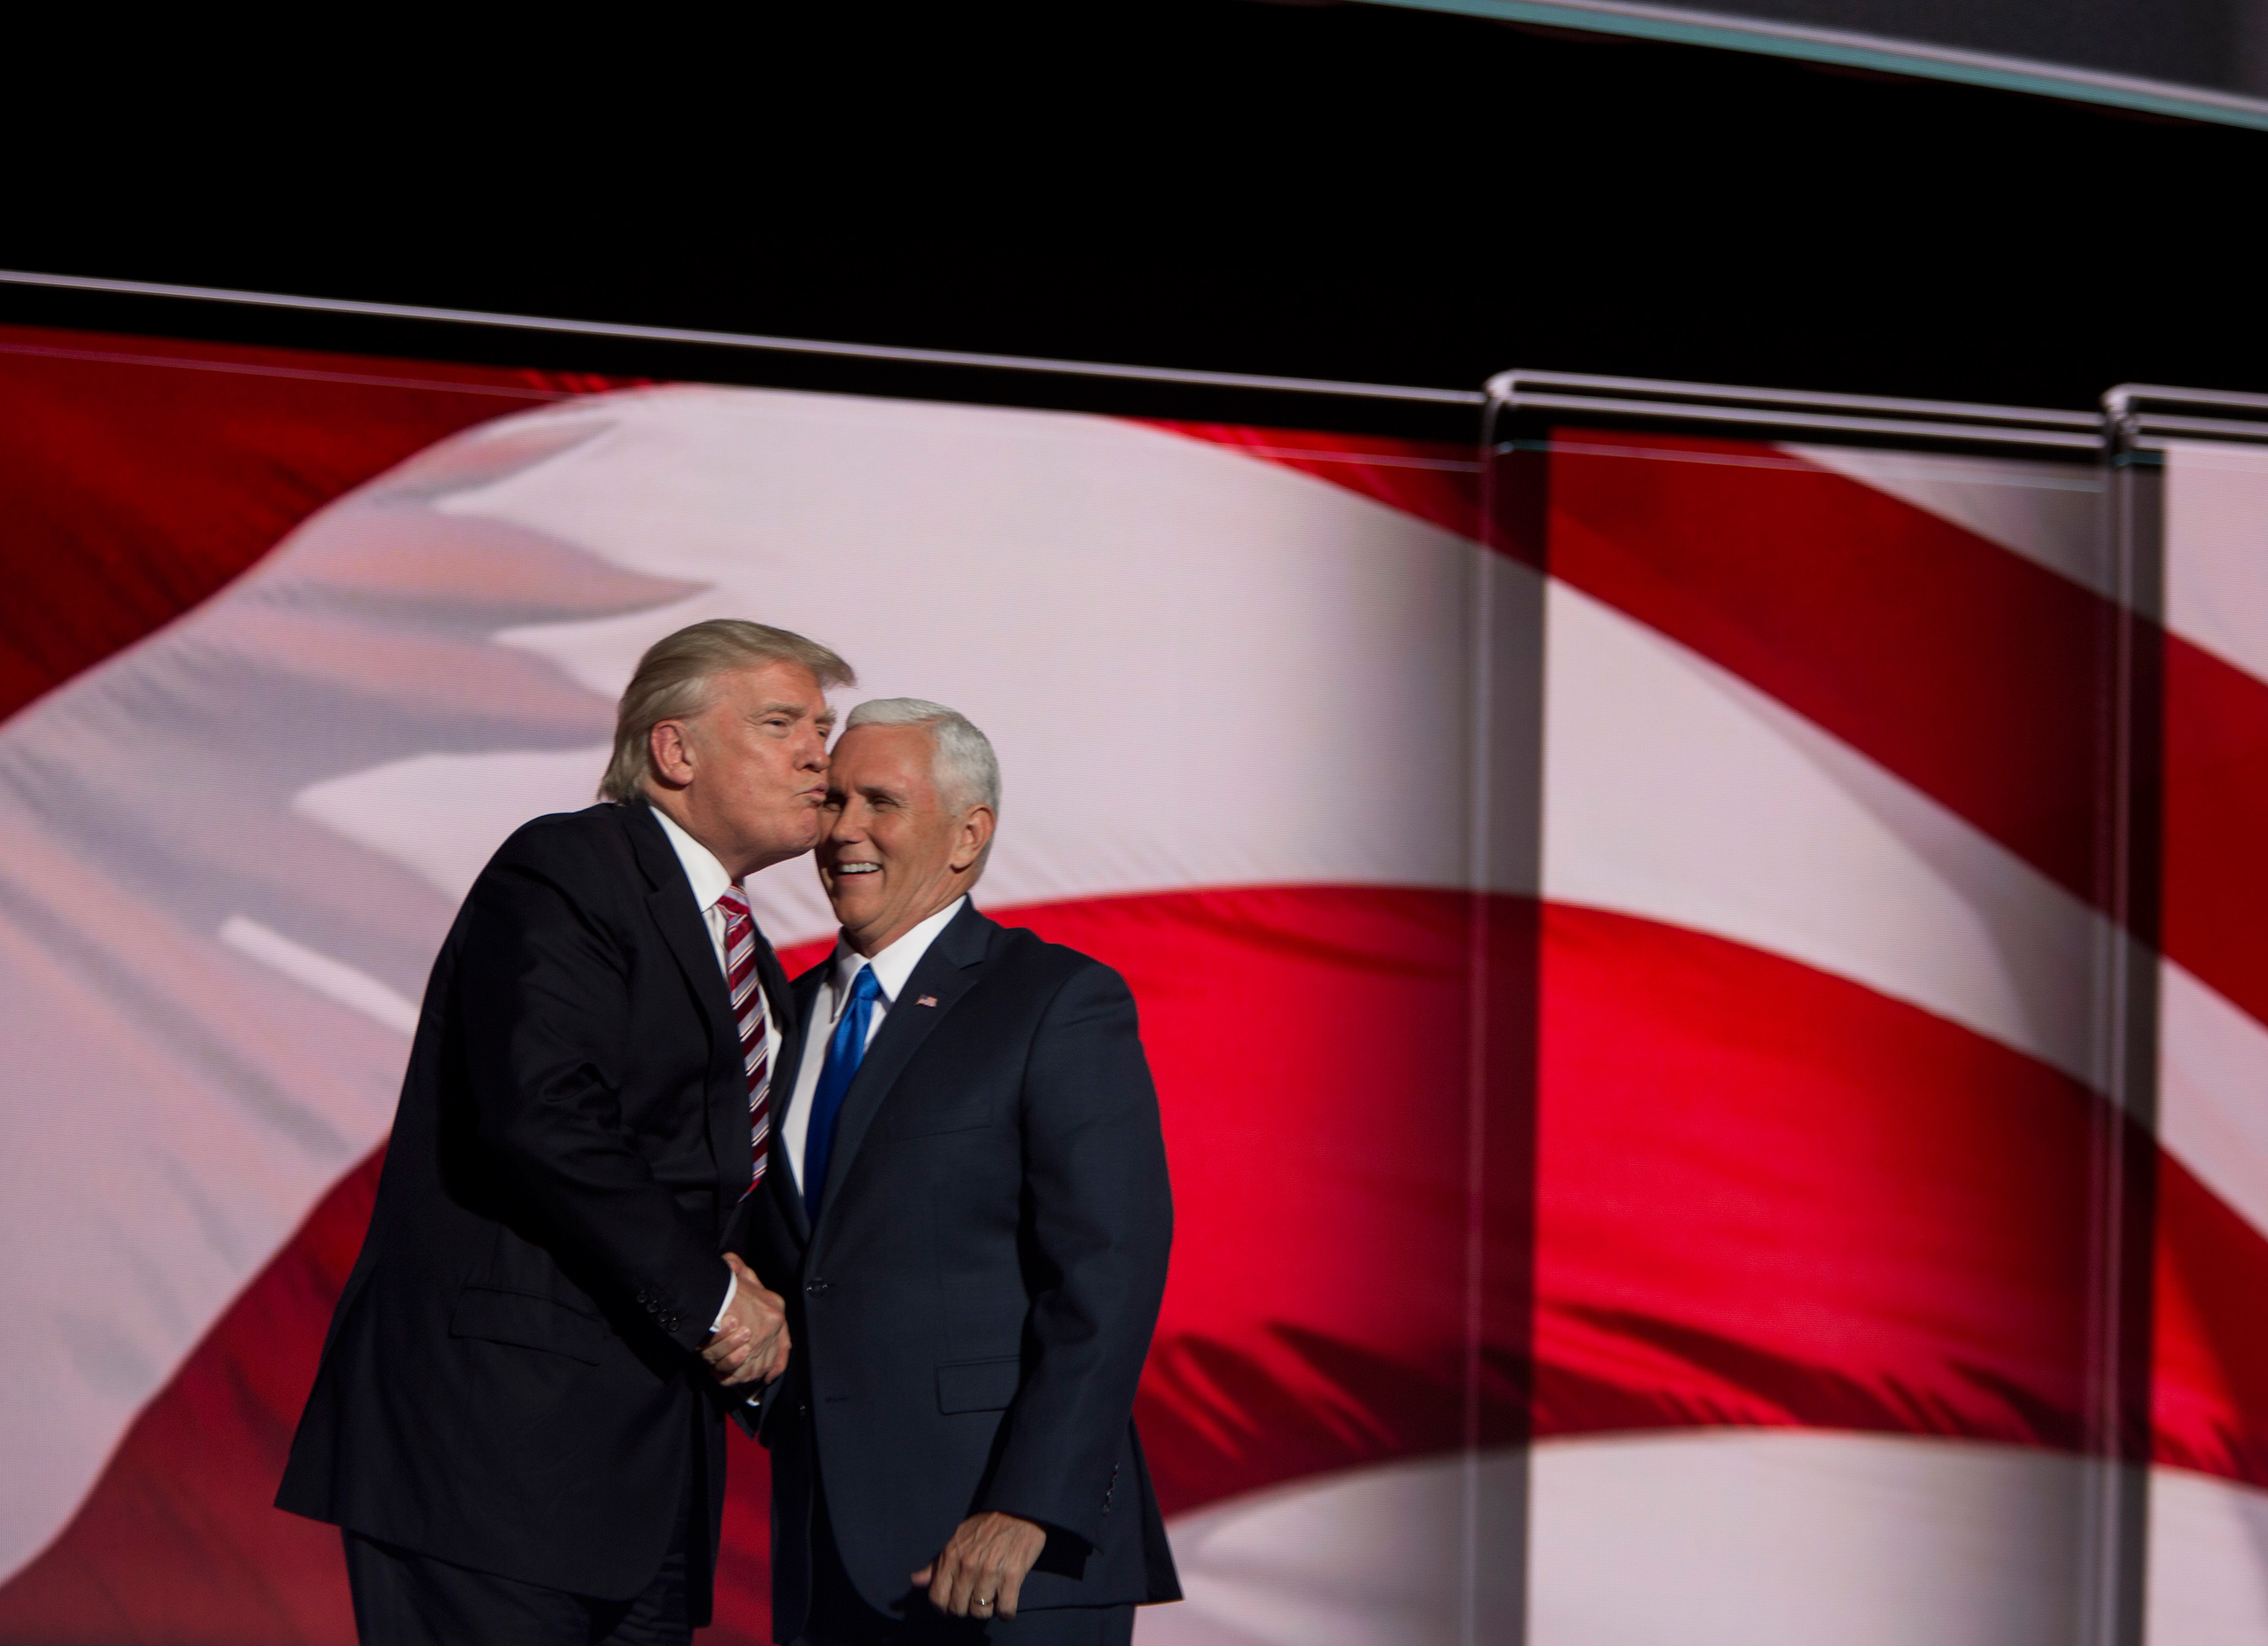 Republican presidential candidate Donald Trump congratulates Republican vice presidential candidate Mike Pence after he delivered a speech on the third day of the Republican National Convention on July 20, 2016 at the Quicken Loans Arena in Cleveland, Ohio.From  The 82 Most Unforgettable Photos From the Election